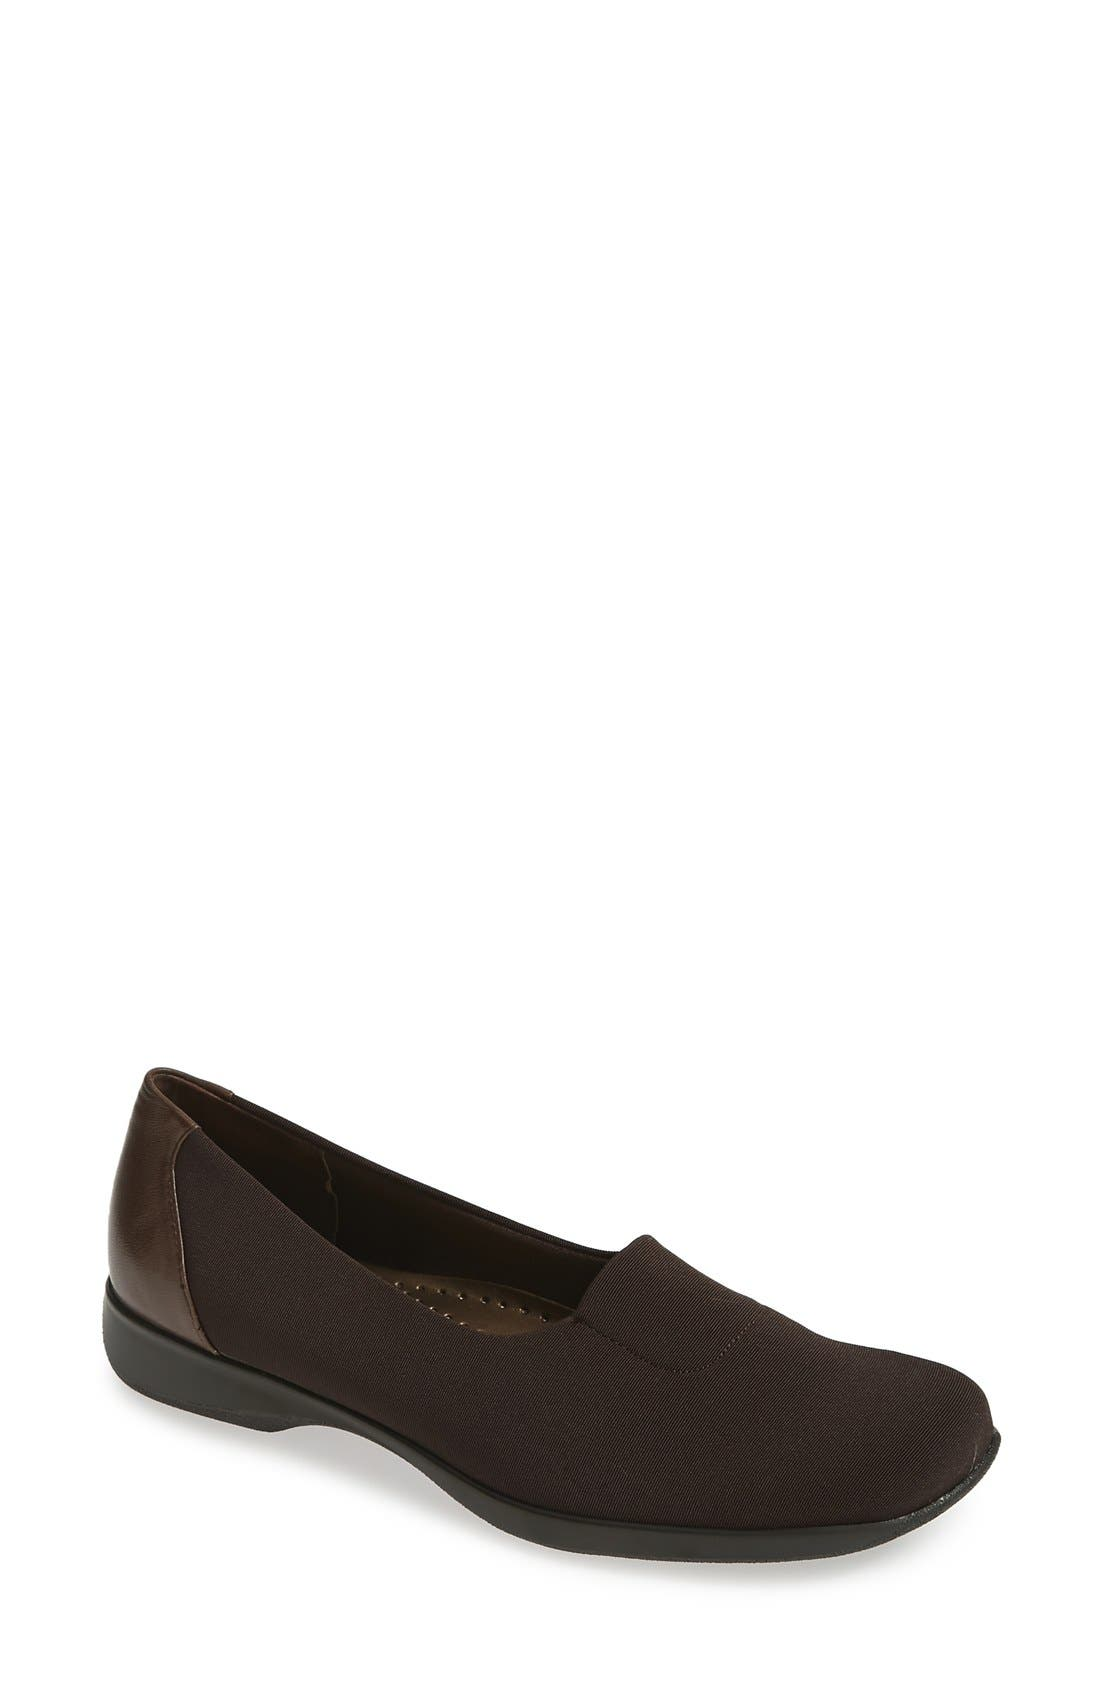 'Signature Jake' Slip On,                         Main,                         color, DARK BROWN